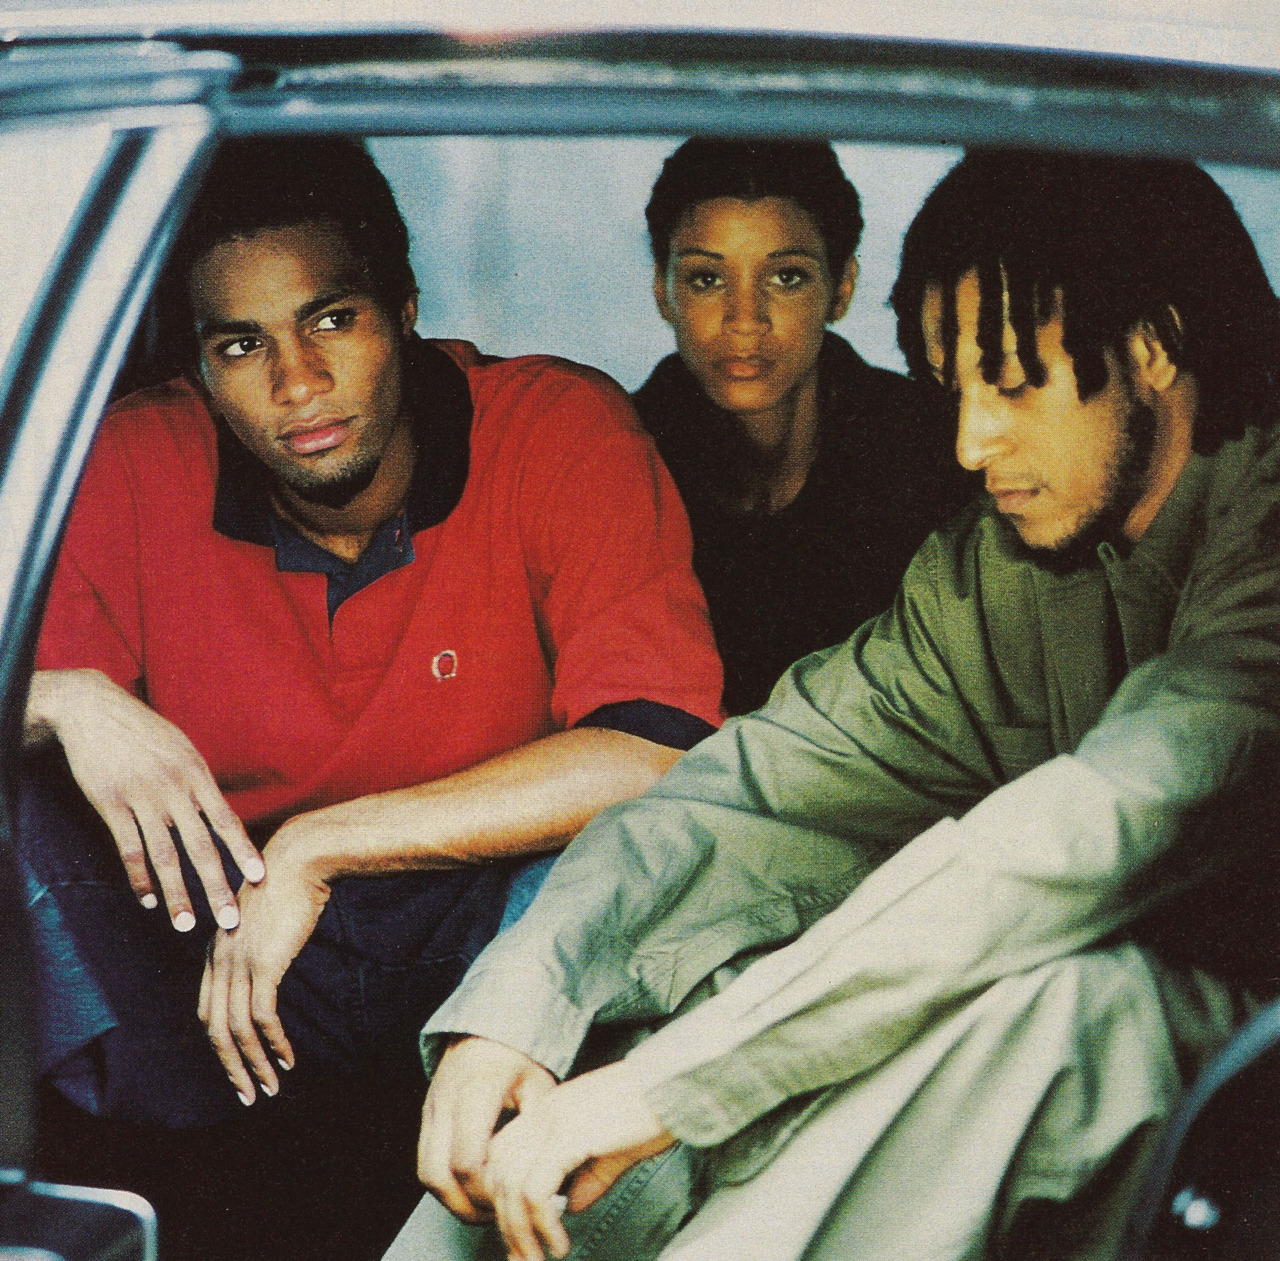 digable planets ladybug net worth - photo #20